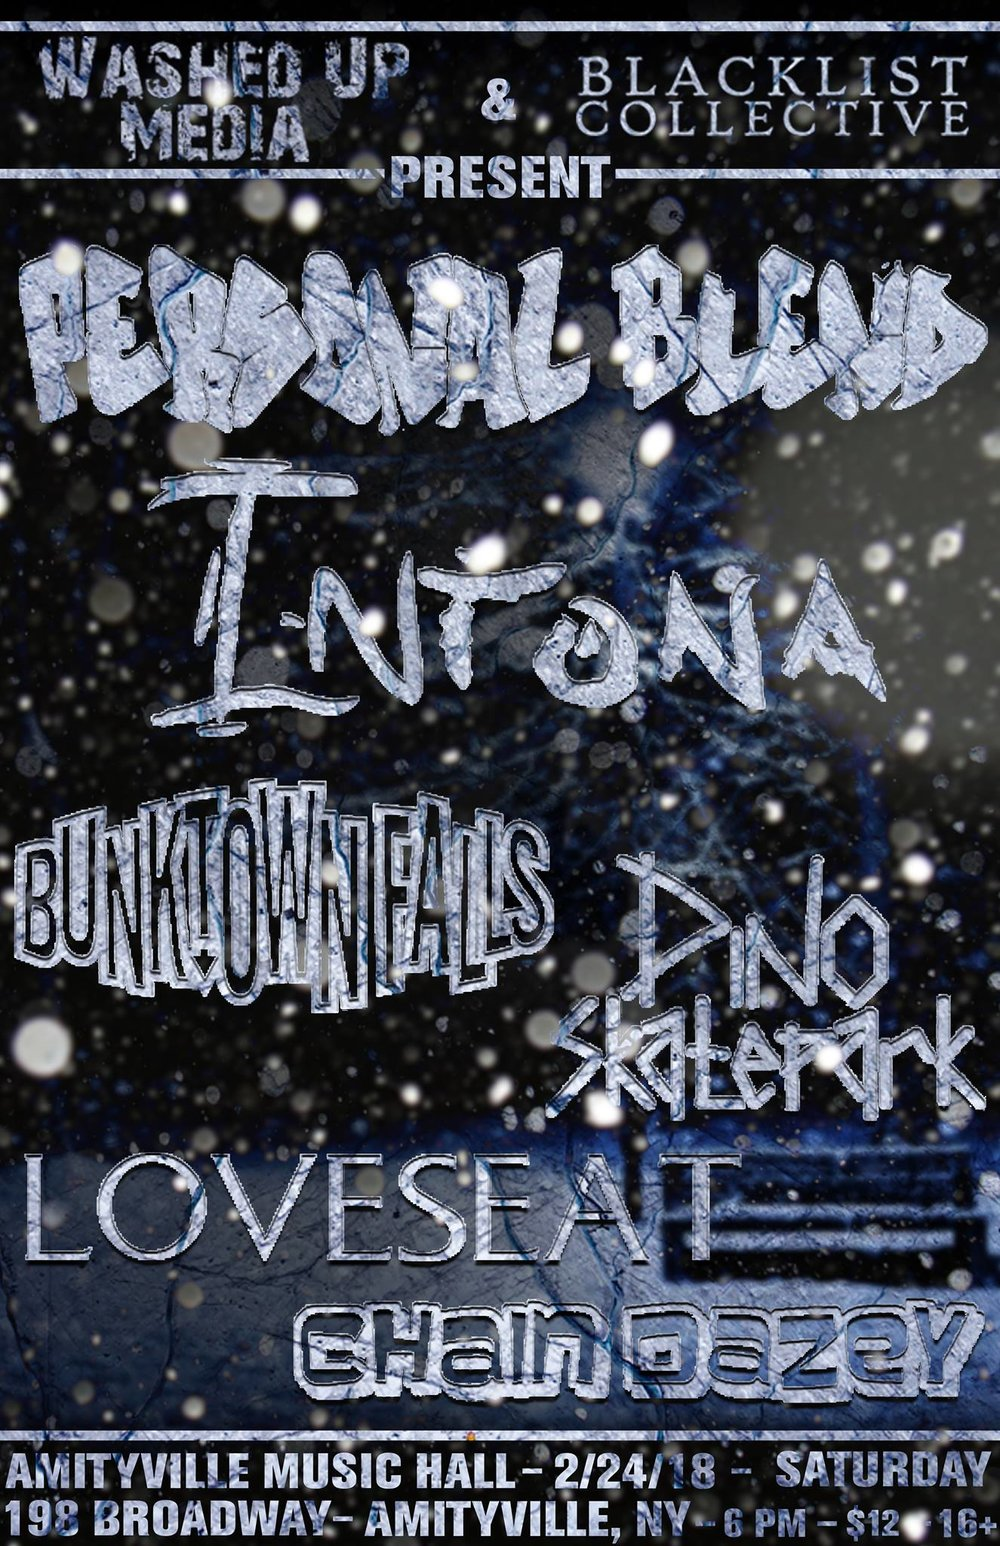 Personal Blend - Personal Blend, Intona, Bunktown Falls, Dino Skatepark, LoveSeat, Chain Dazey$10 ADV / $12 DOS16+ w/ ID